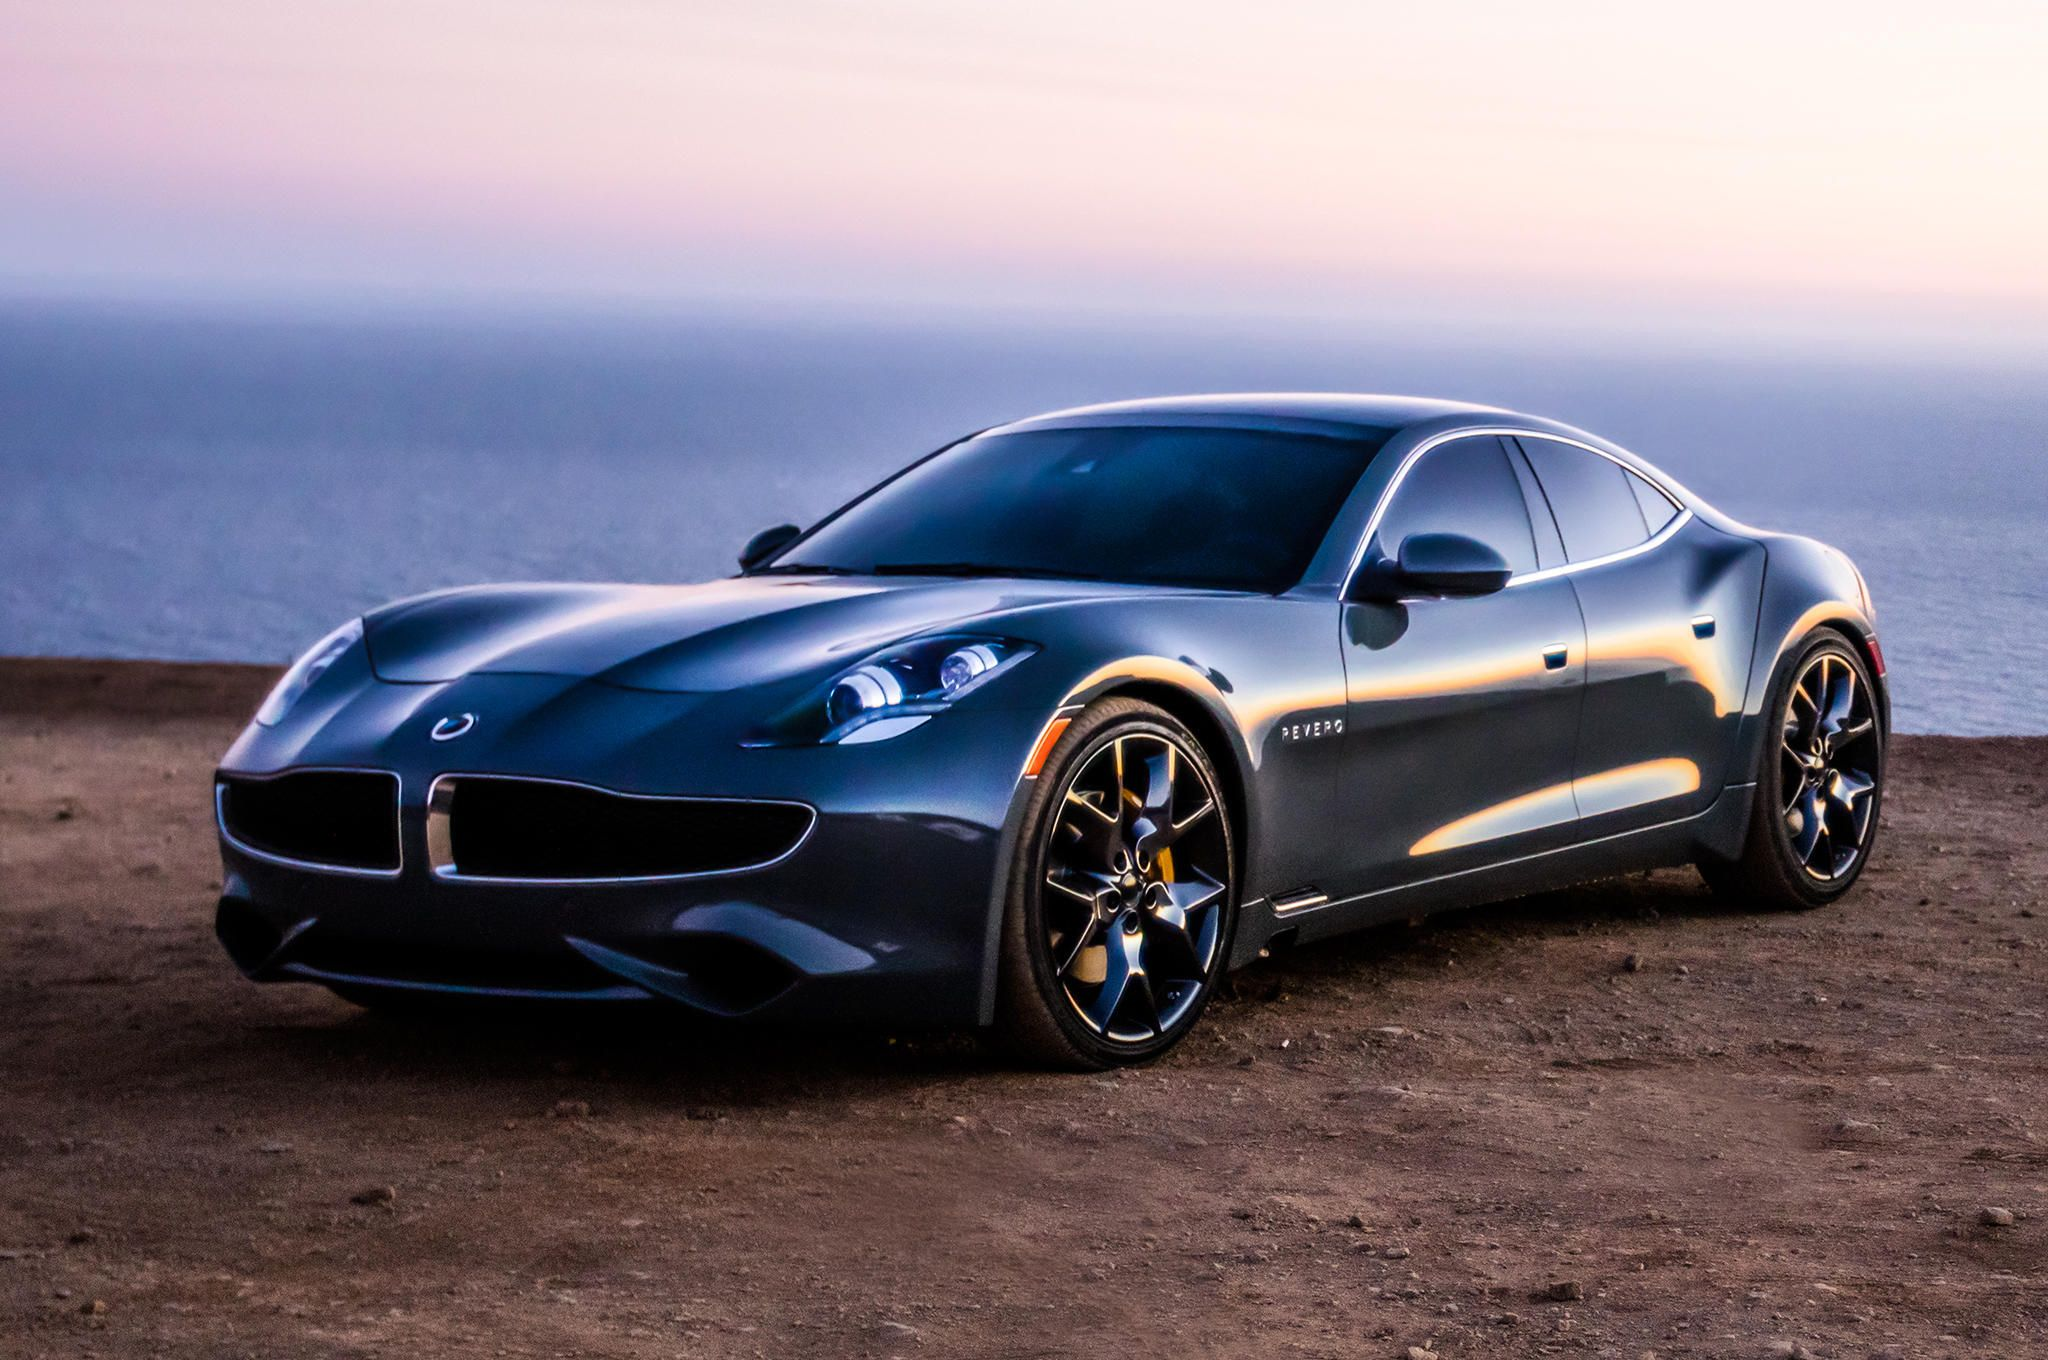 2017 Karma Revero Is Unveiled With 130 000 Price Tag And New